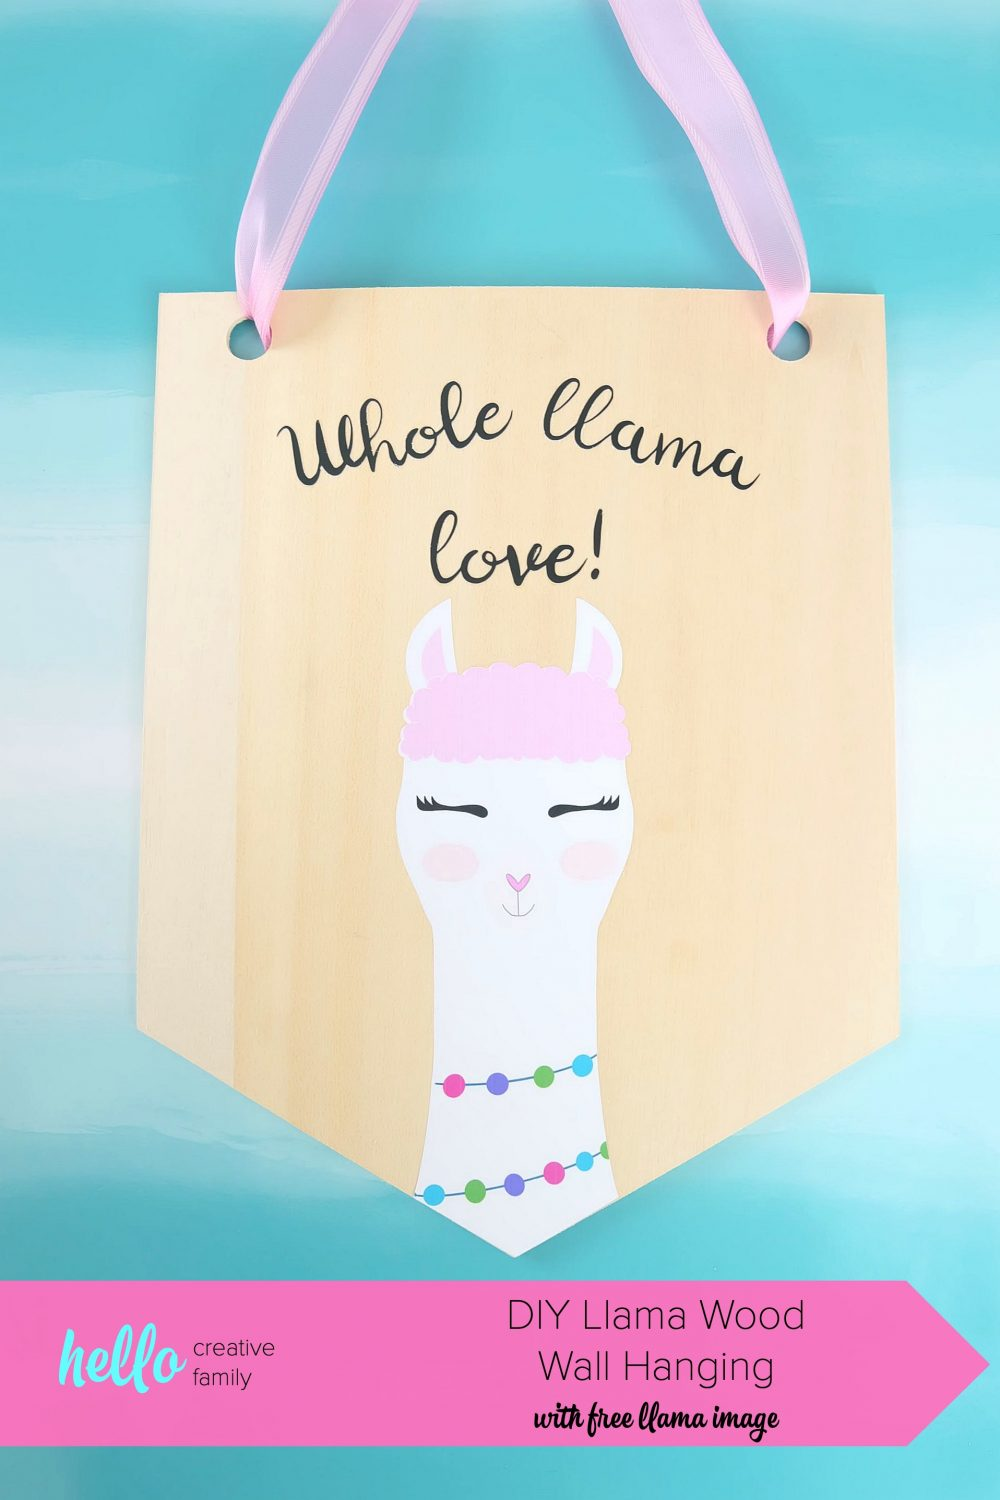 Learn how to cut basswood with your Cricut Maker and make this adorable DIY Llama Wood Wall Hanging featuring a cute Print and Cut llama and the quote Whole Llama Love. This craft would make a sweet handmade gift and would be perfect for decorating a girl's bedroom or as a fun front door decoration. Another amazing Cricut Project from Hello Creative Family. #CricutProject #Cricut #handmade #llama #girlsroom